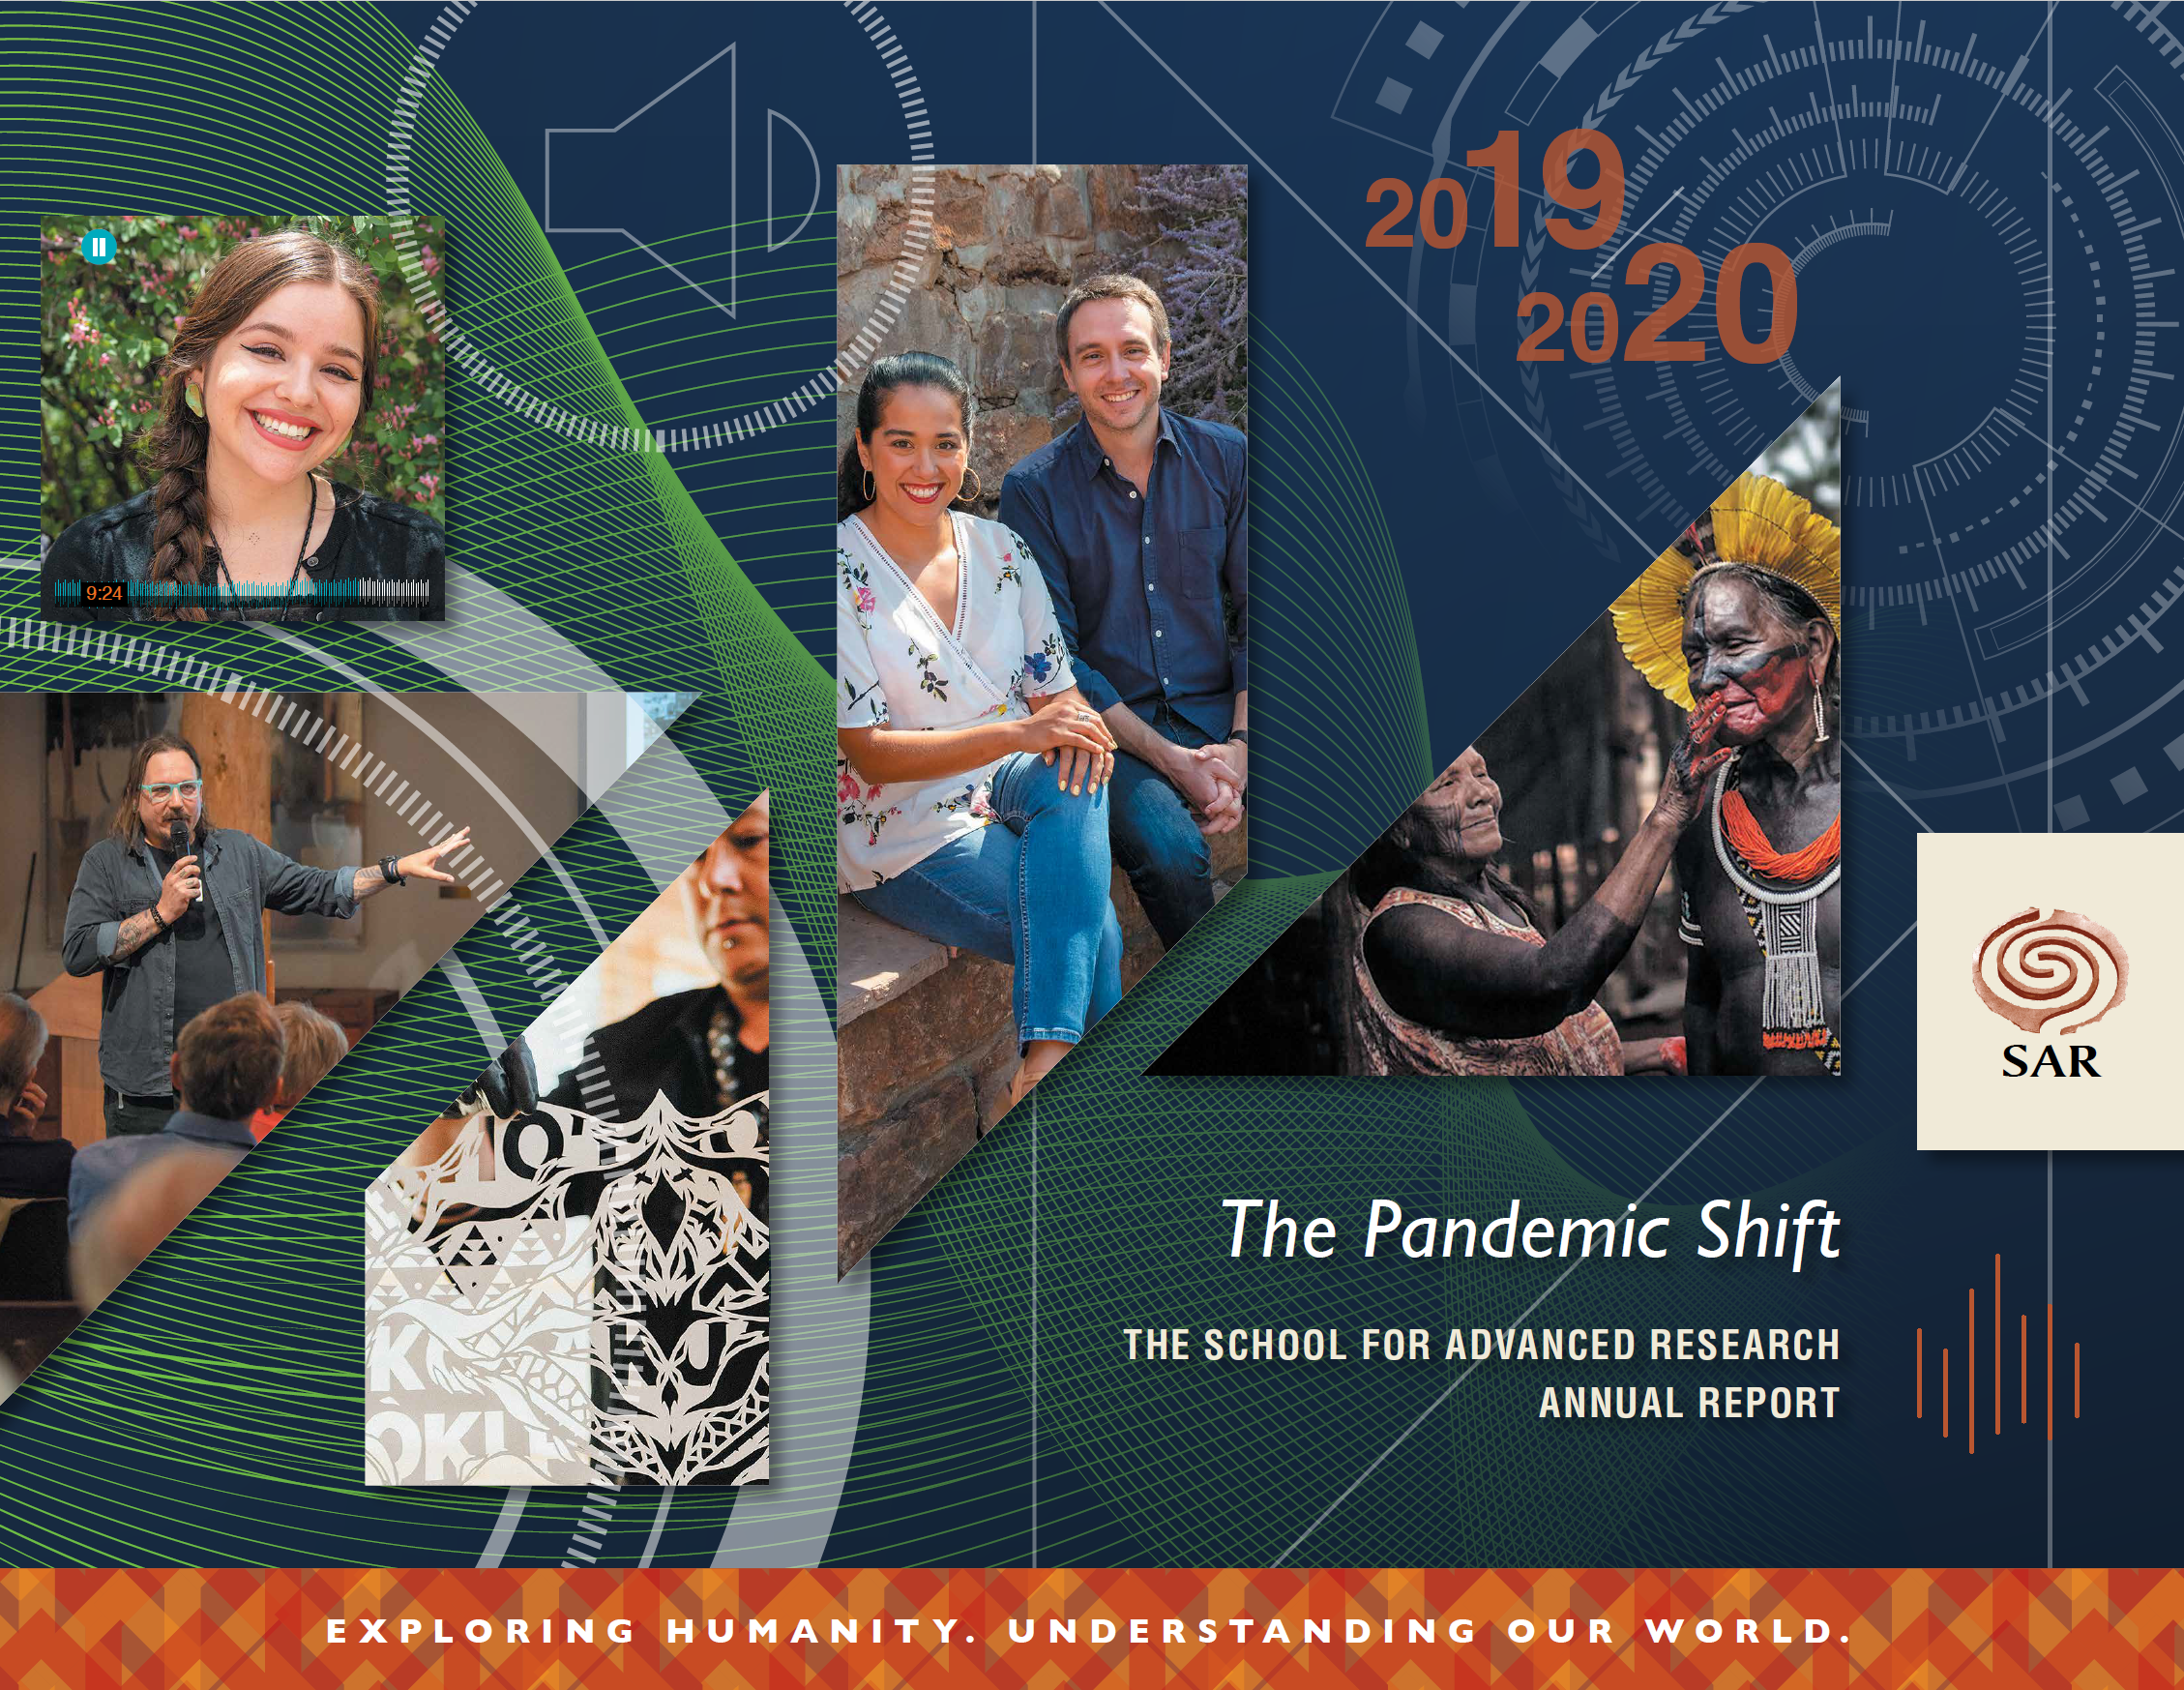 The Pandemic Shift: The School for Advanced Research Annual Report